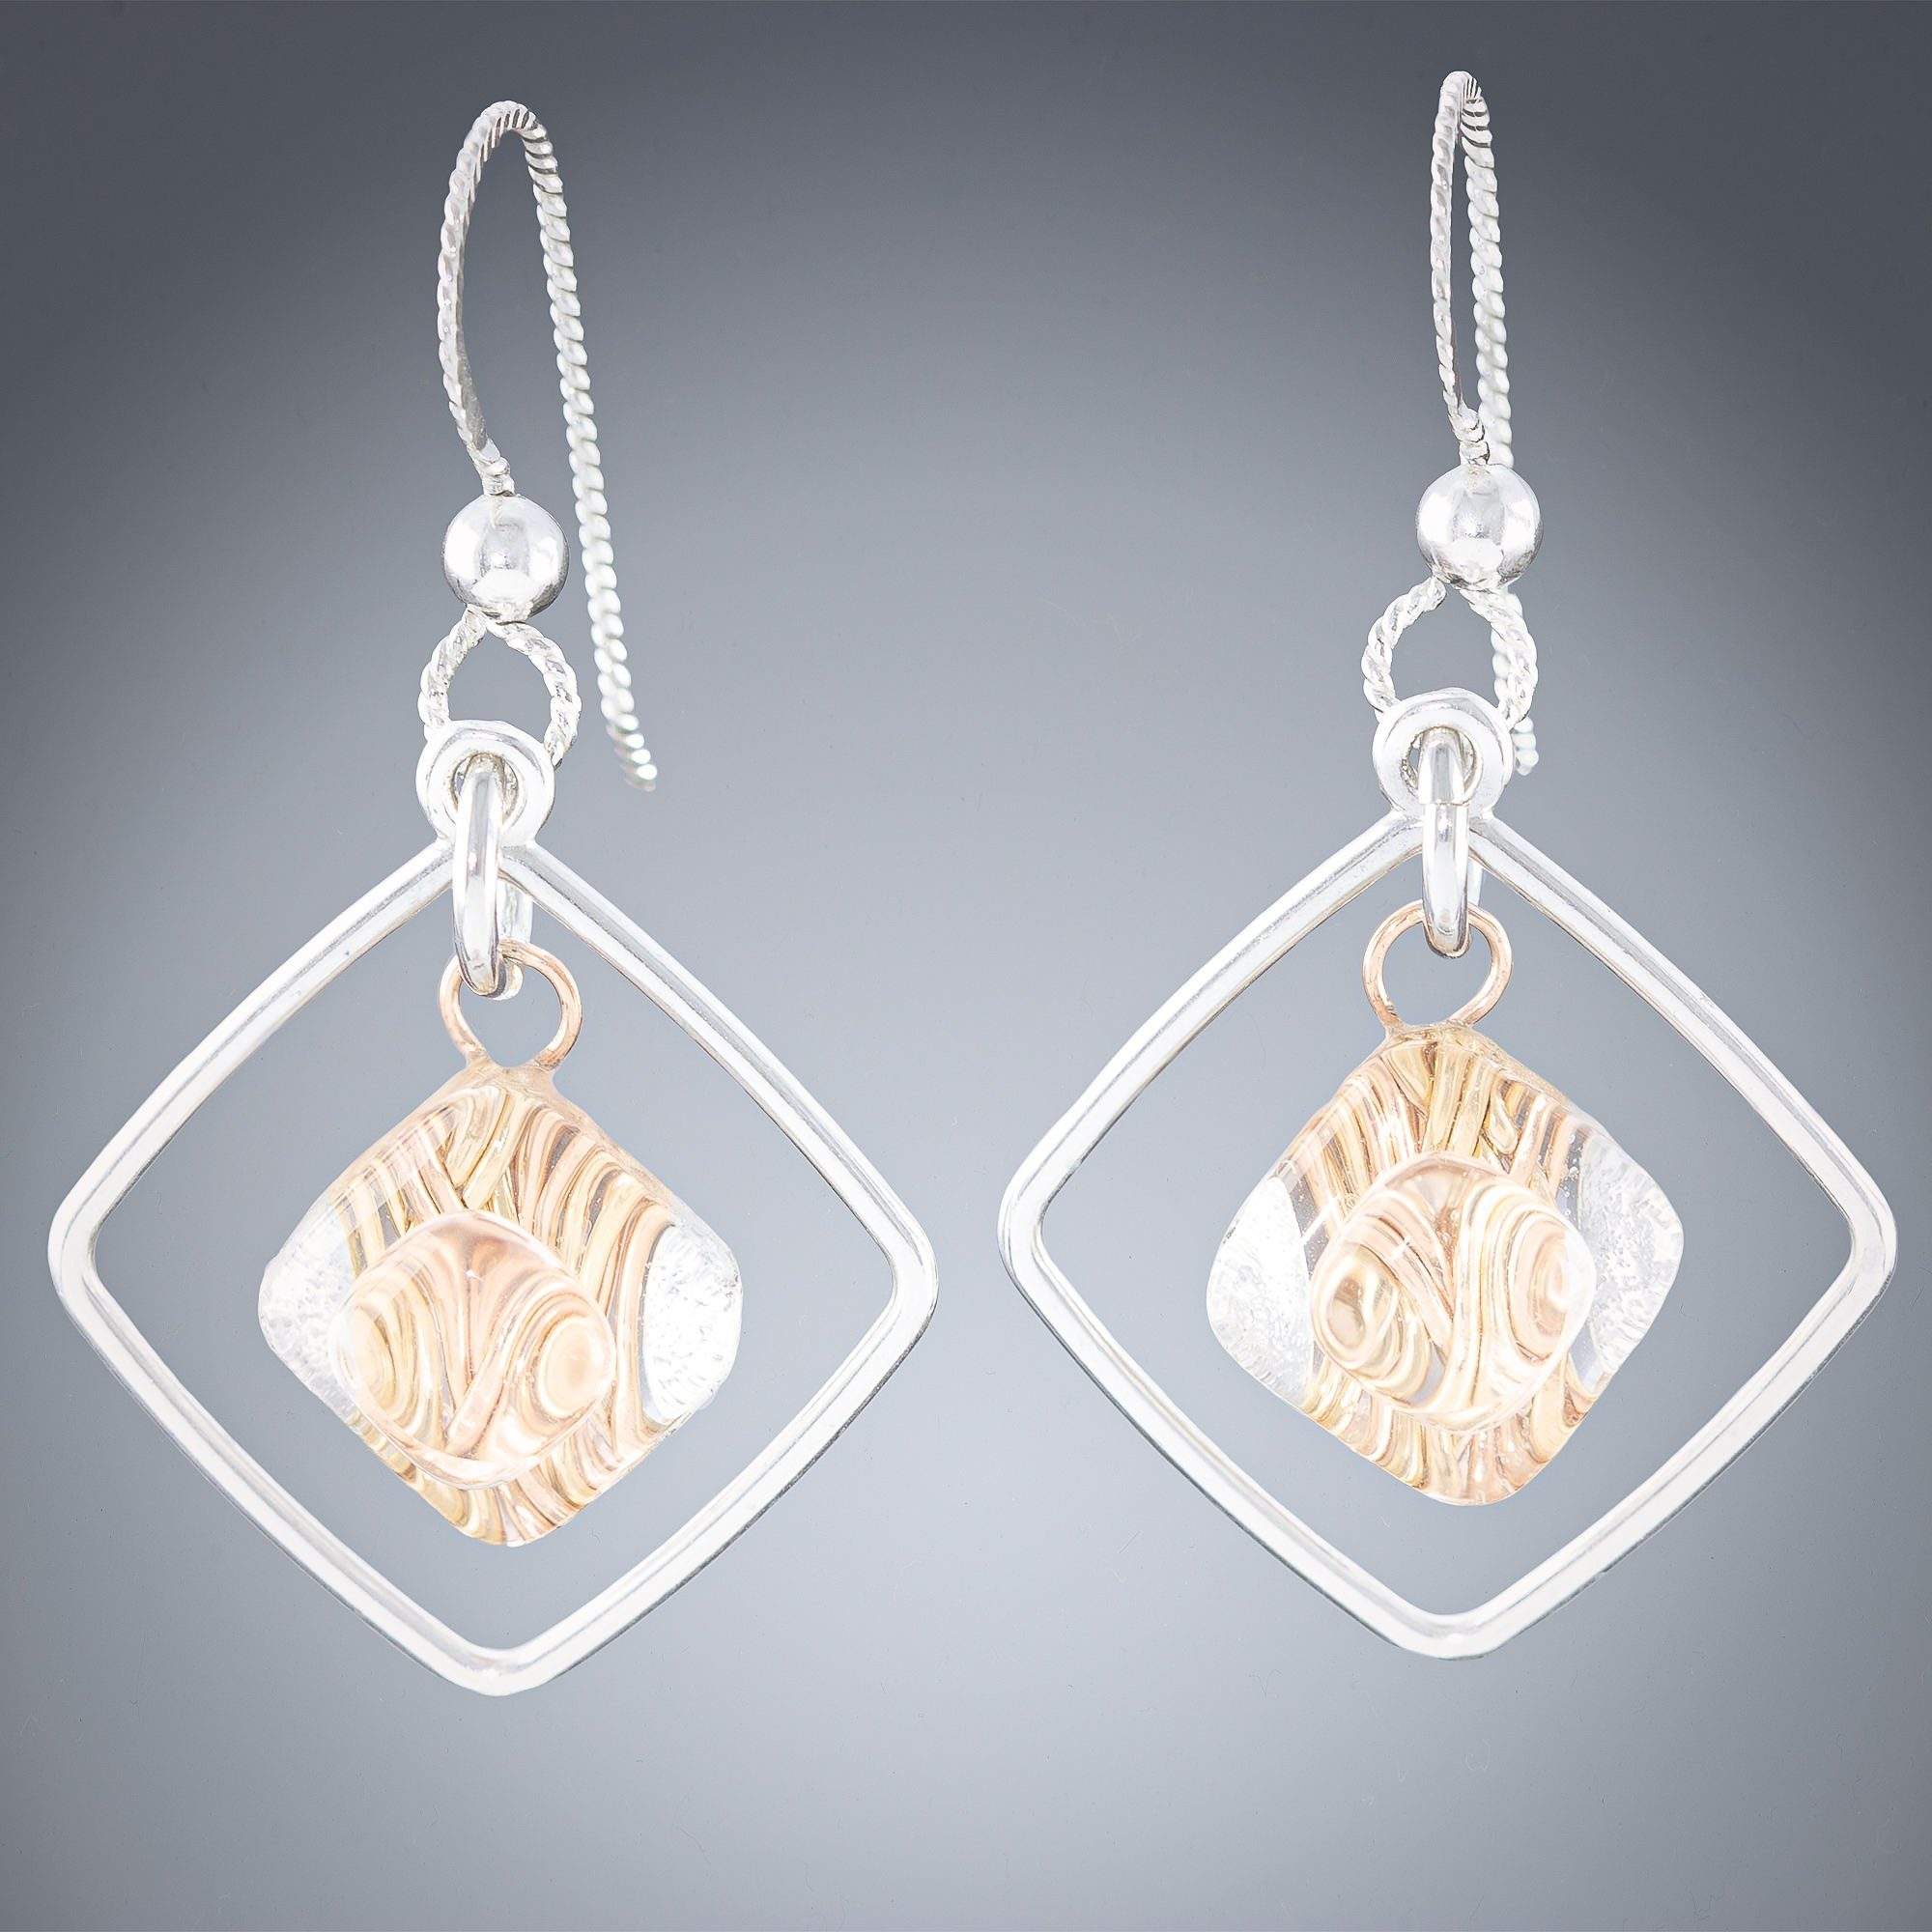 Woven Allure Diamond Earrings - Tahmi